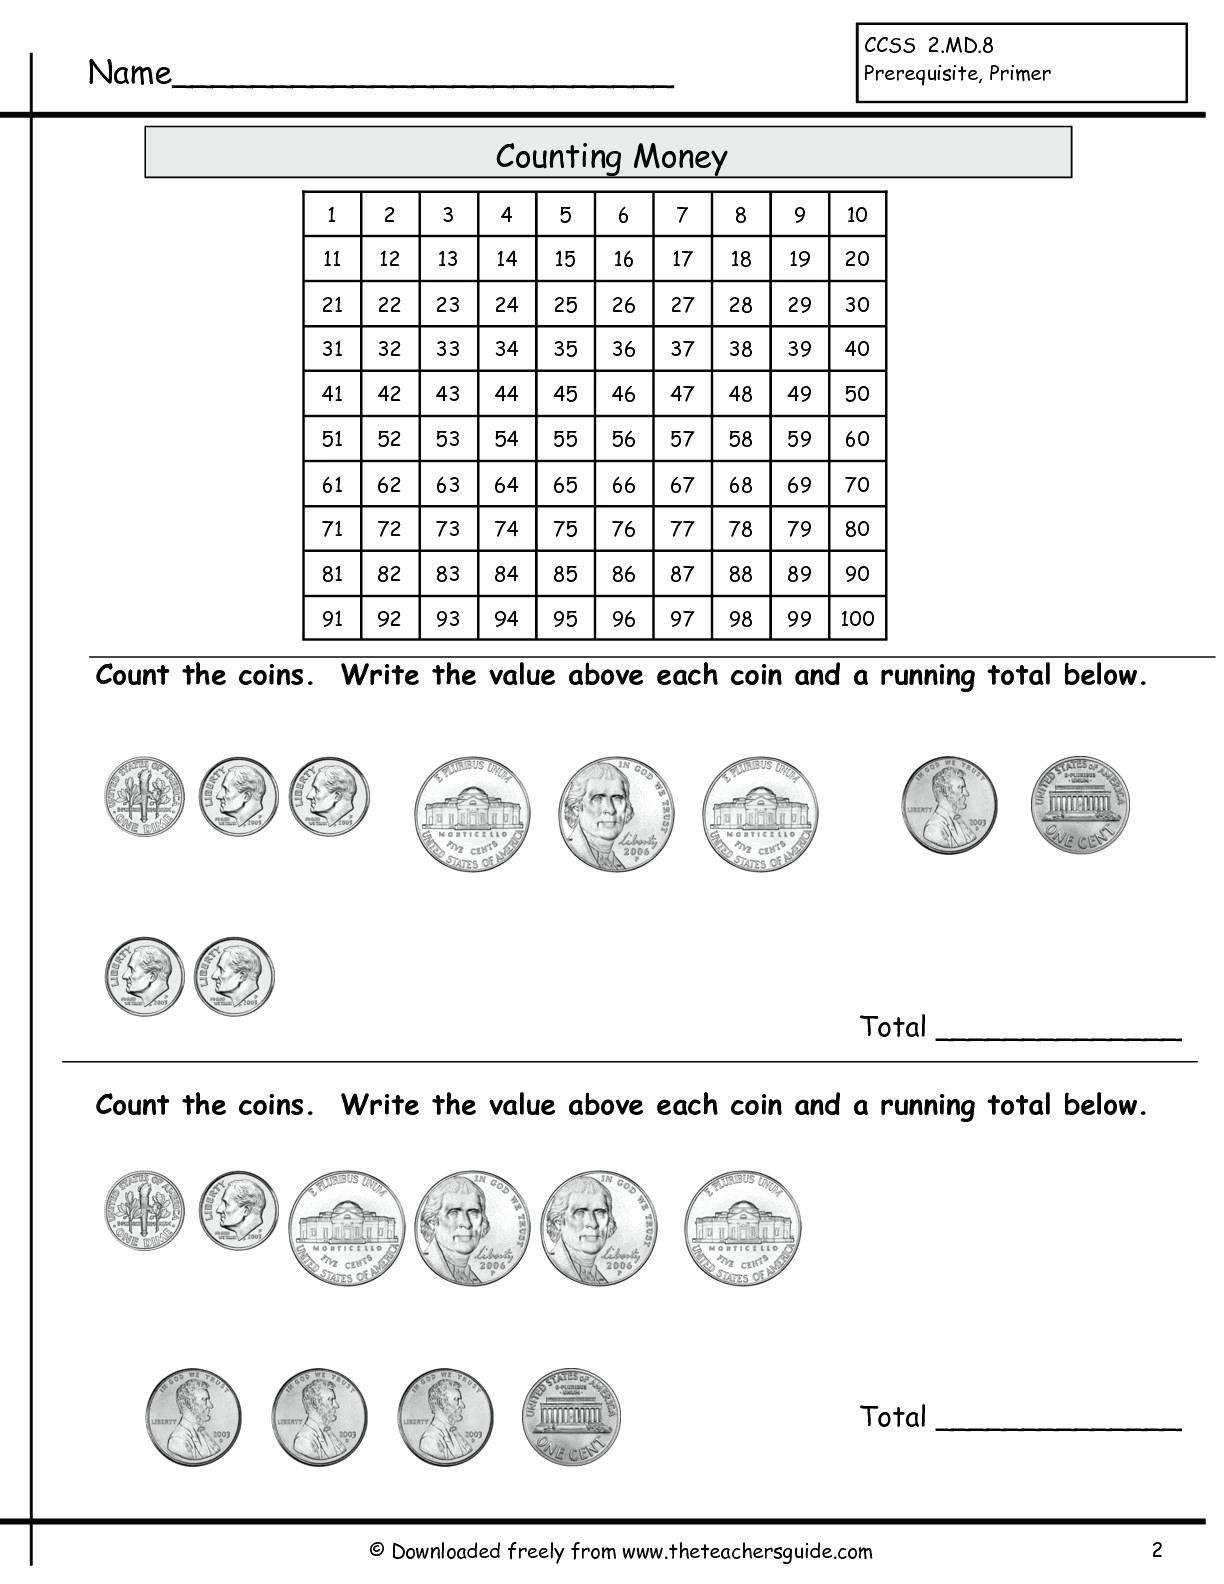 3rd Grade Math Measurement Worksheets 3 Free Math Worksheets Second Grade 2 Measurement Metric